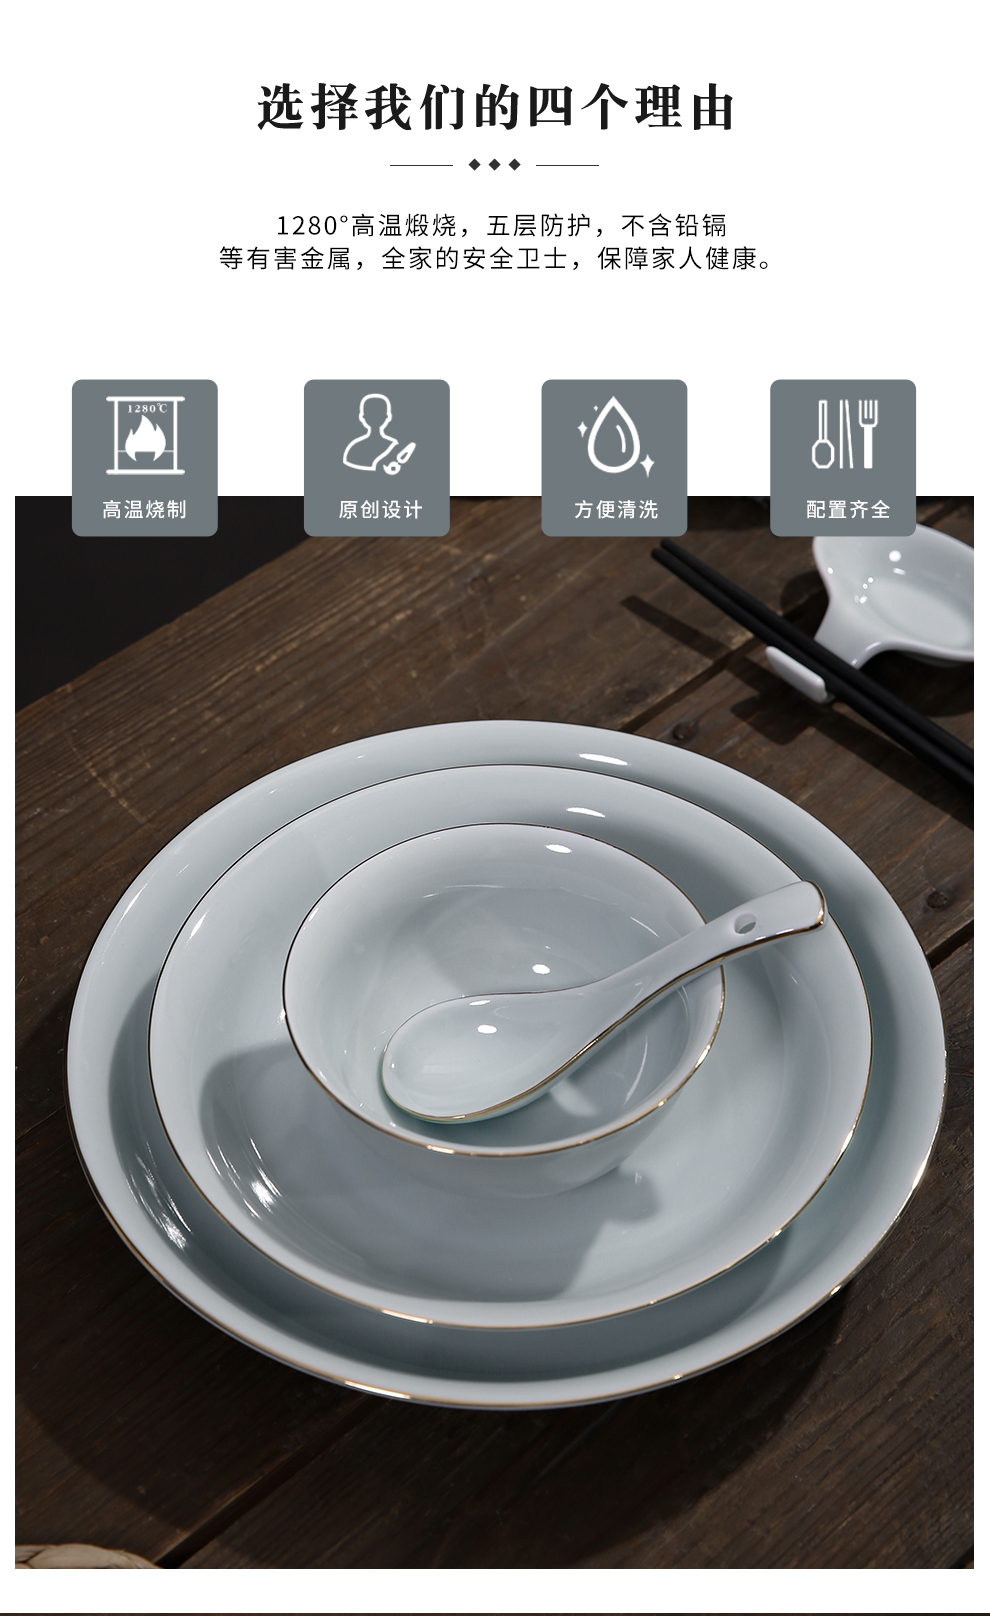 Jingdezhen flagship stores in shadow blue paint ceramic tableware to eat bread and butter dish plates spoons free combination collocation